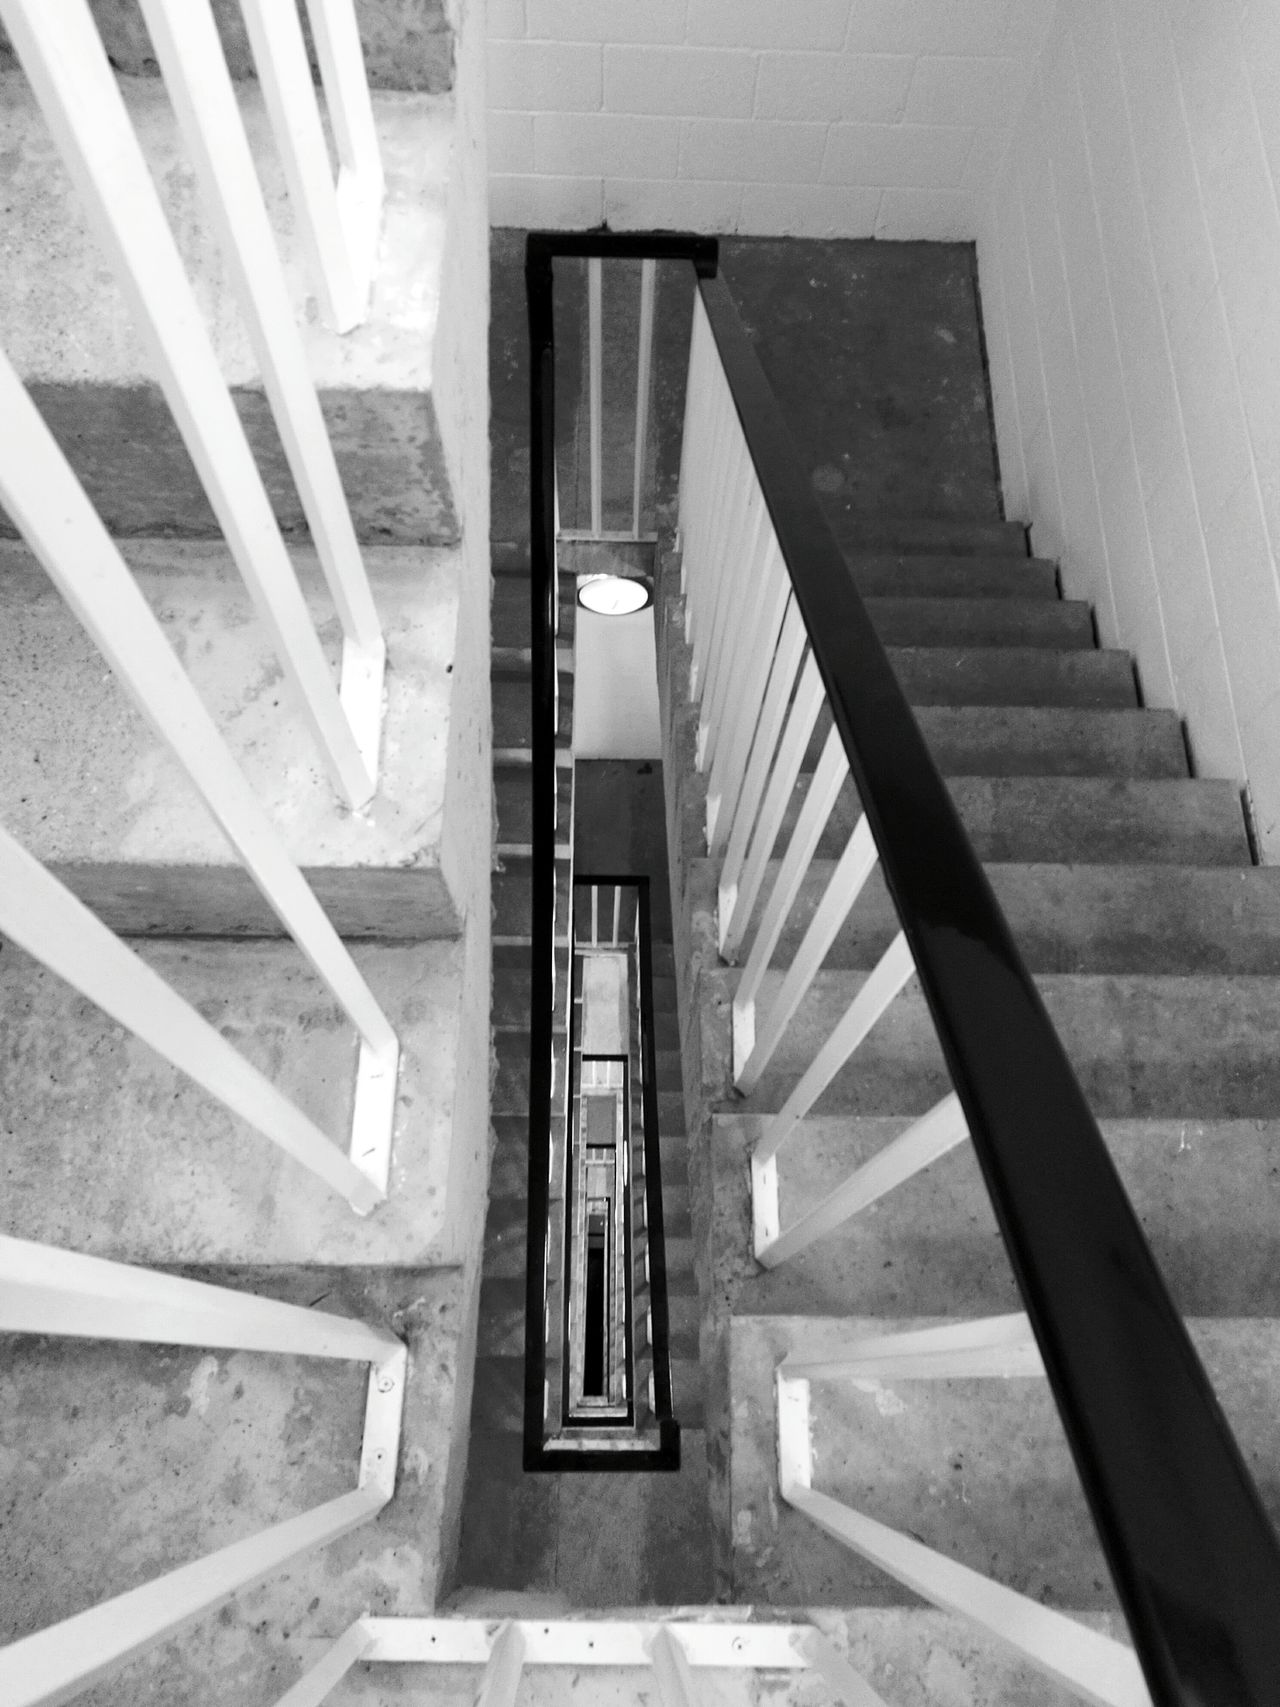 Steps Steps And Staircases Architecture Staircase Railing Built Structure Bannister Battle Of The Cities Newcastle Upon Tyne City Life Ceiling Steps Steps And Staircases Architecture Staircase This Week On Eye Em ep This Week On Eyeem EyeEmBestPics TheWeekOnEyeEM P9photography Huaweip9monochrome Waterloo Street EyeEm Gallery The Color Of Business